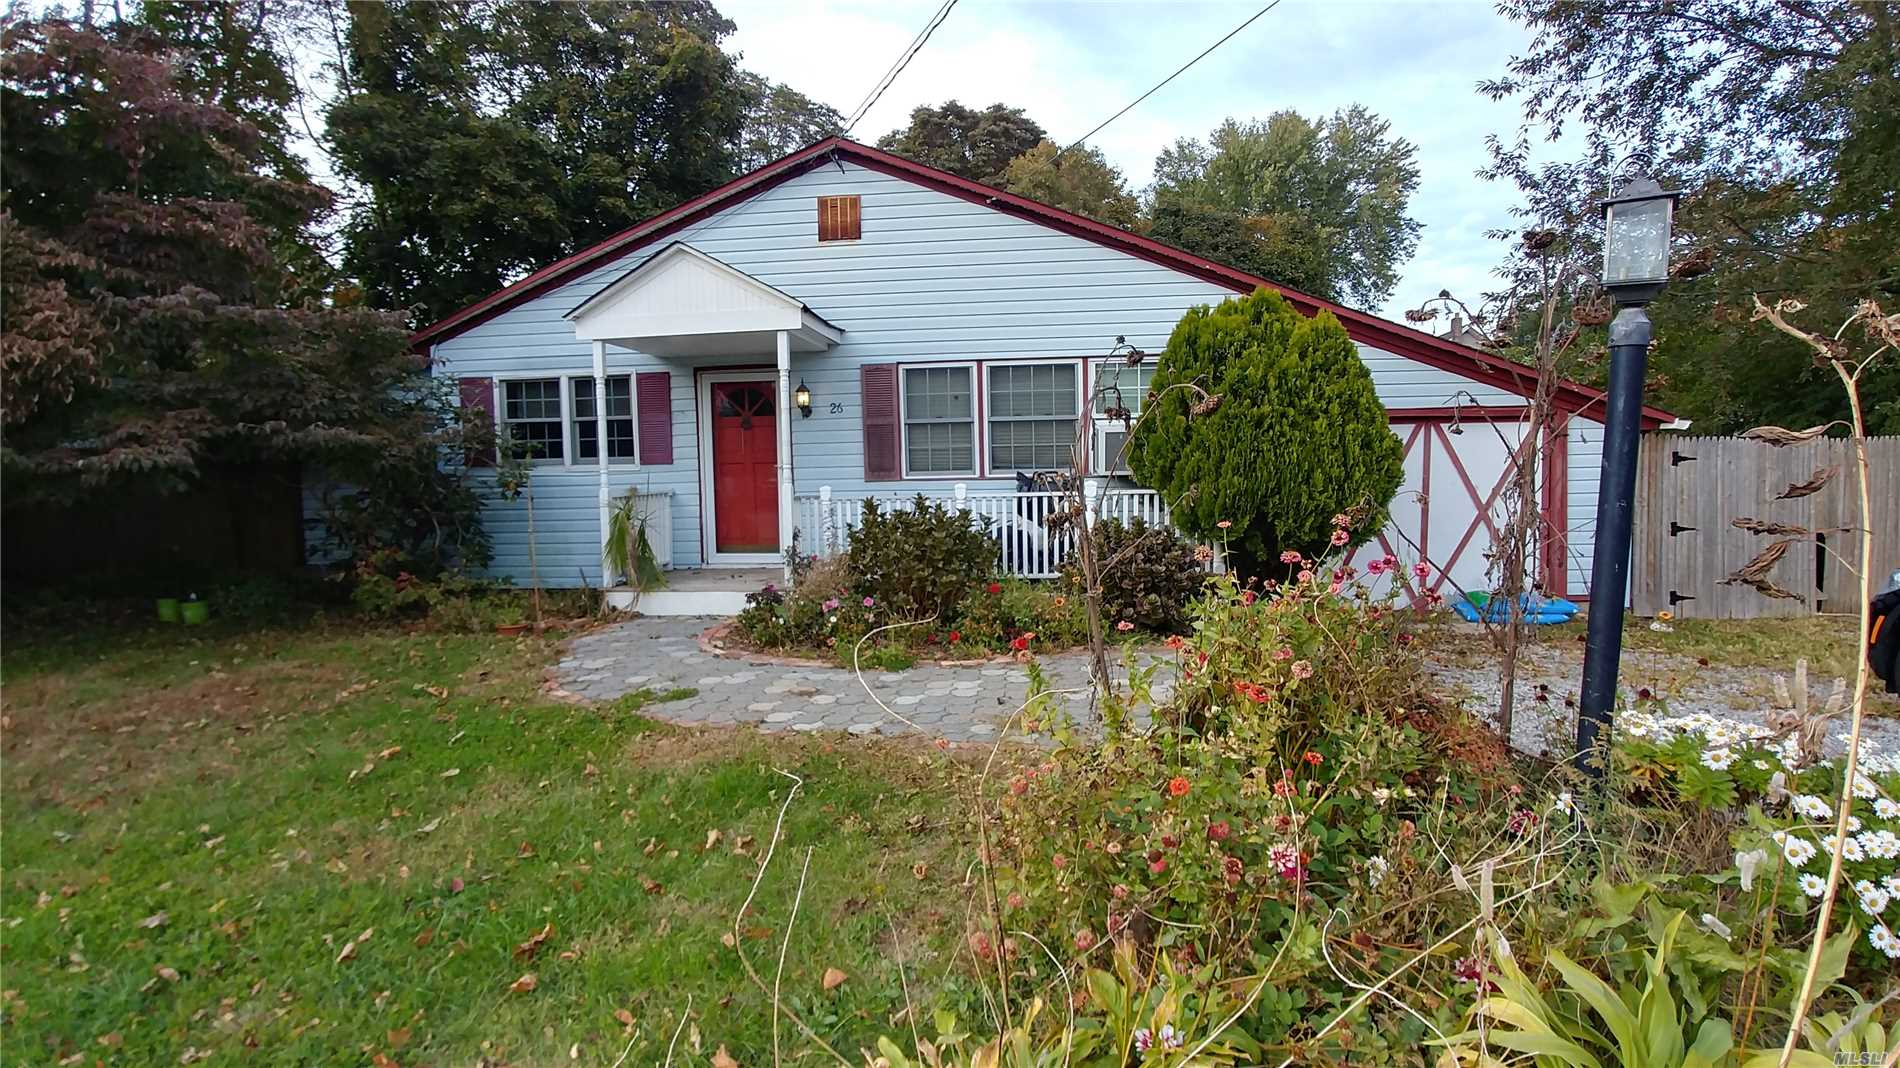 Great Starter On A Nice Mid Block Location! Why Rent !! Come See This Great Starter Home Today!!